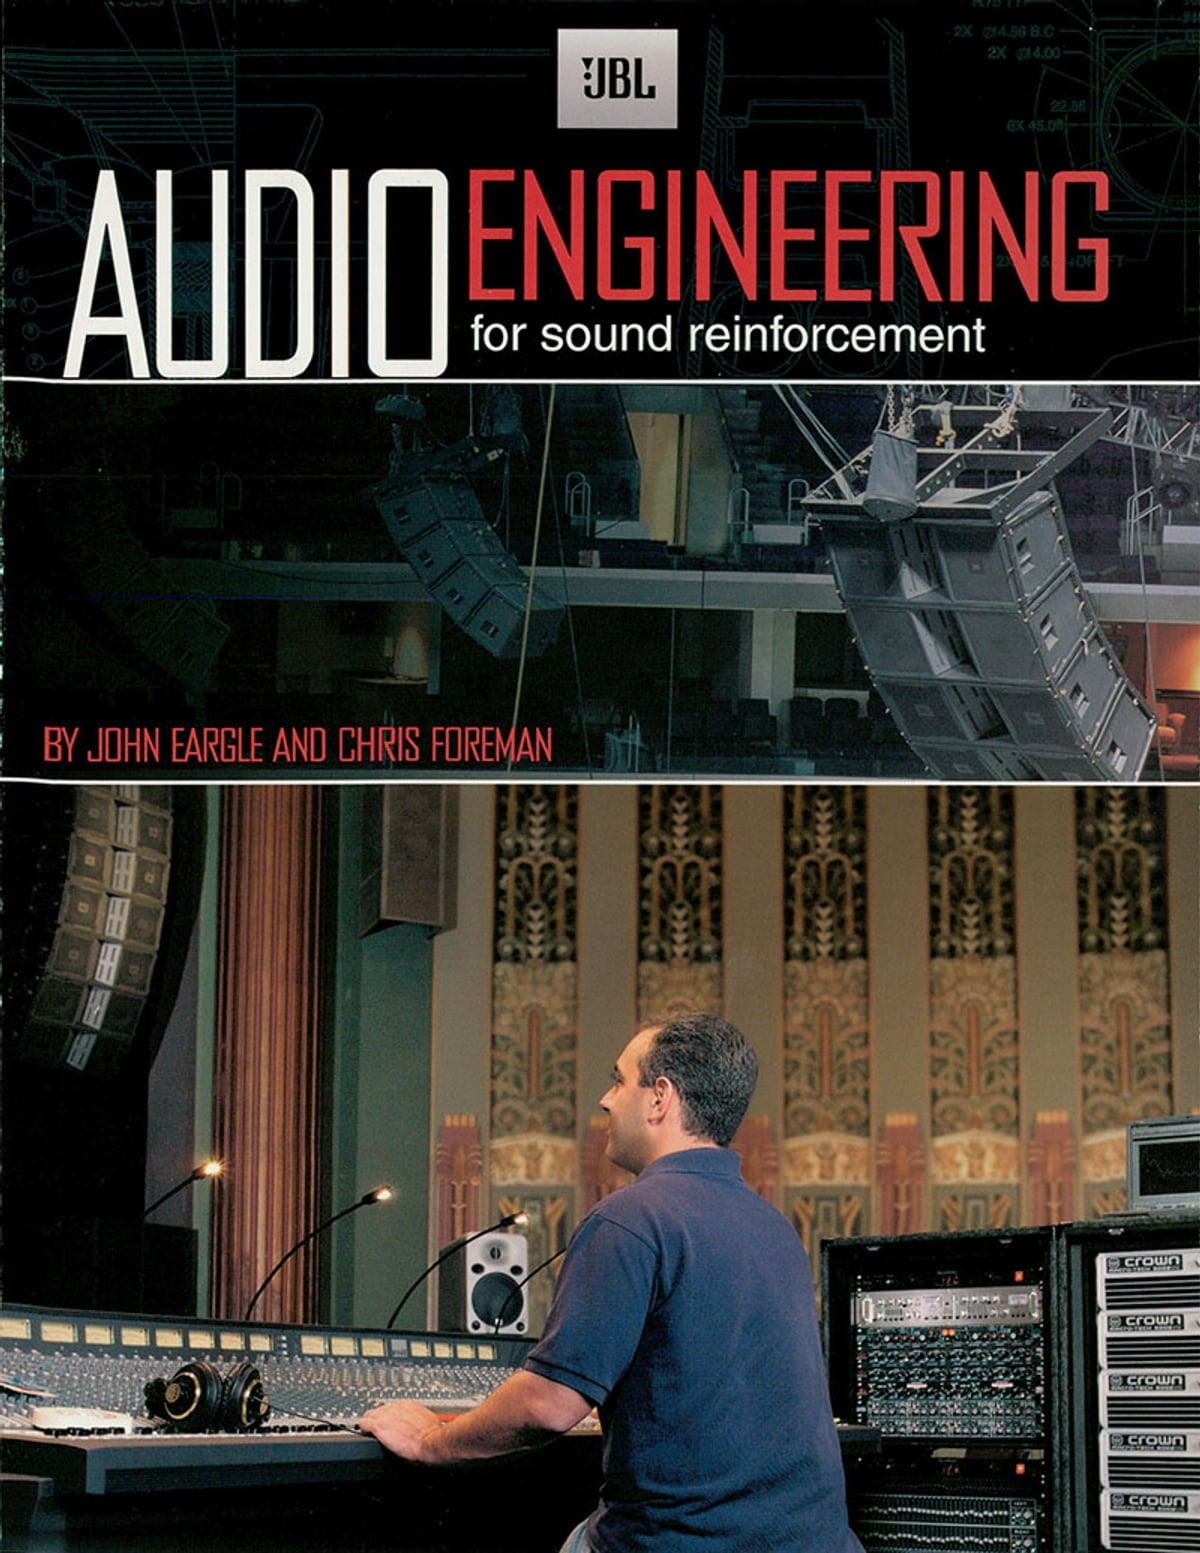 Wondrous Jbl Audio Engineering For Sound Reinforcement Ebook By John M Hairstyle Inspiration Daily Dogsangcom